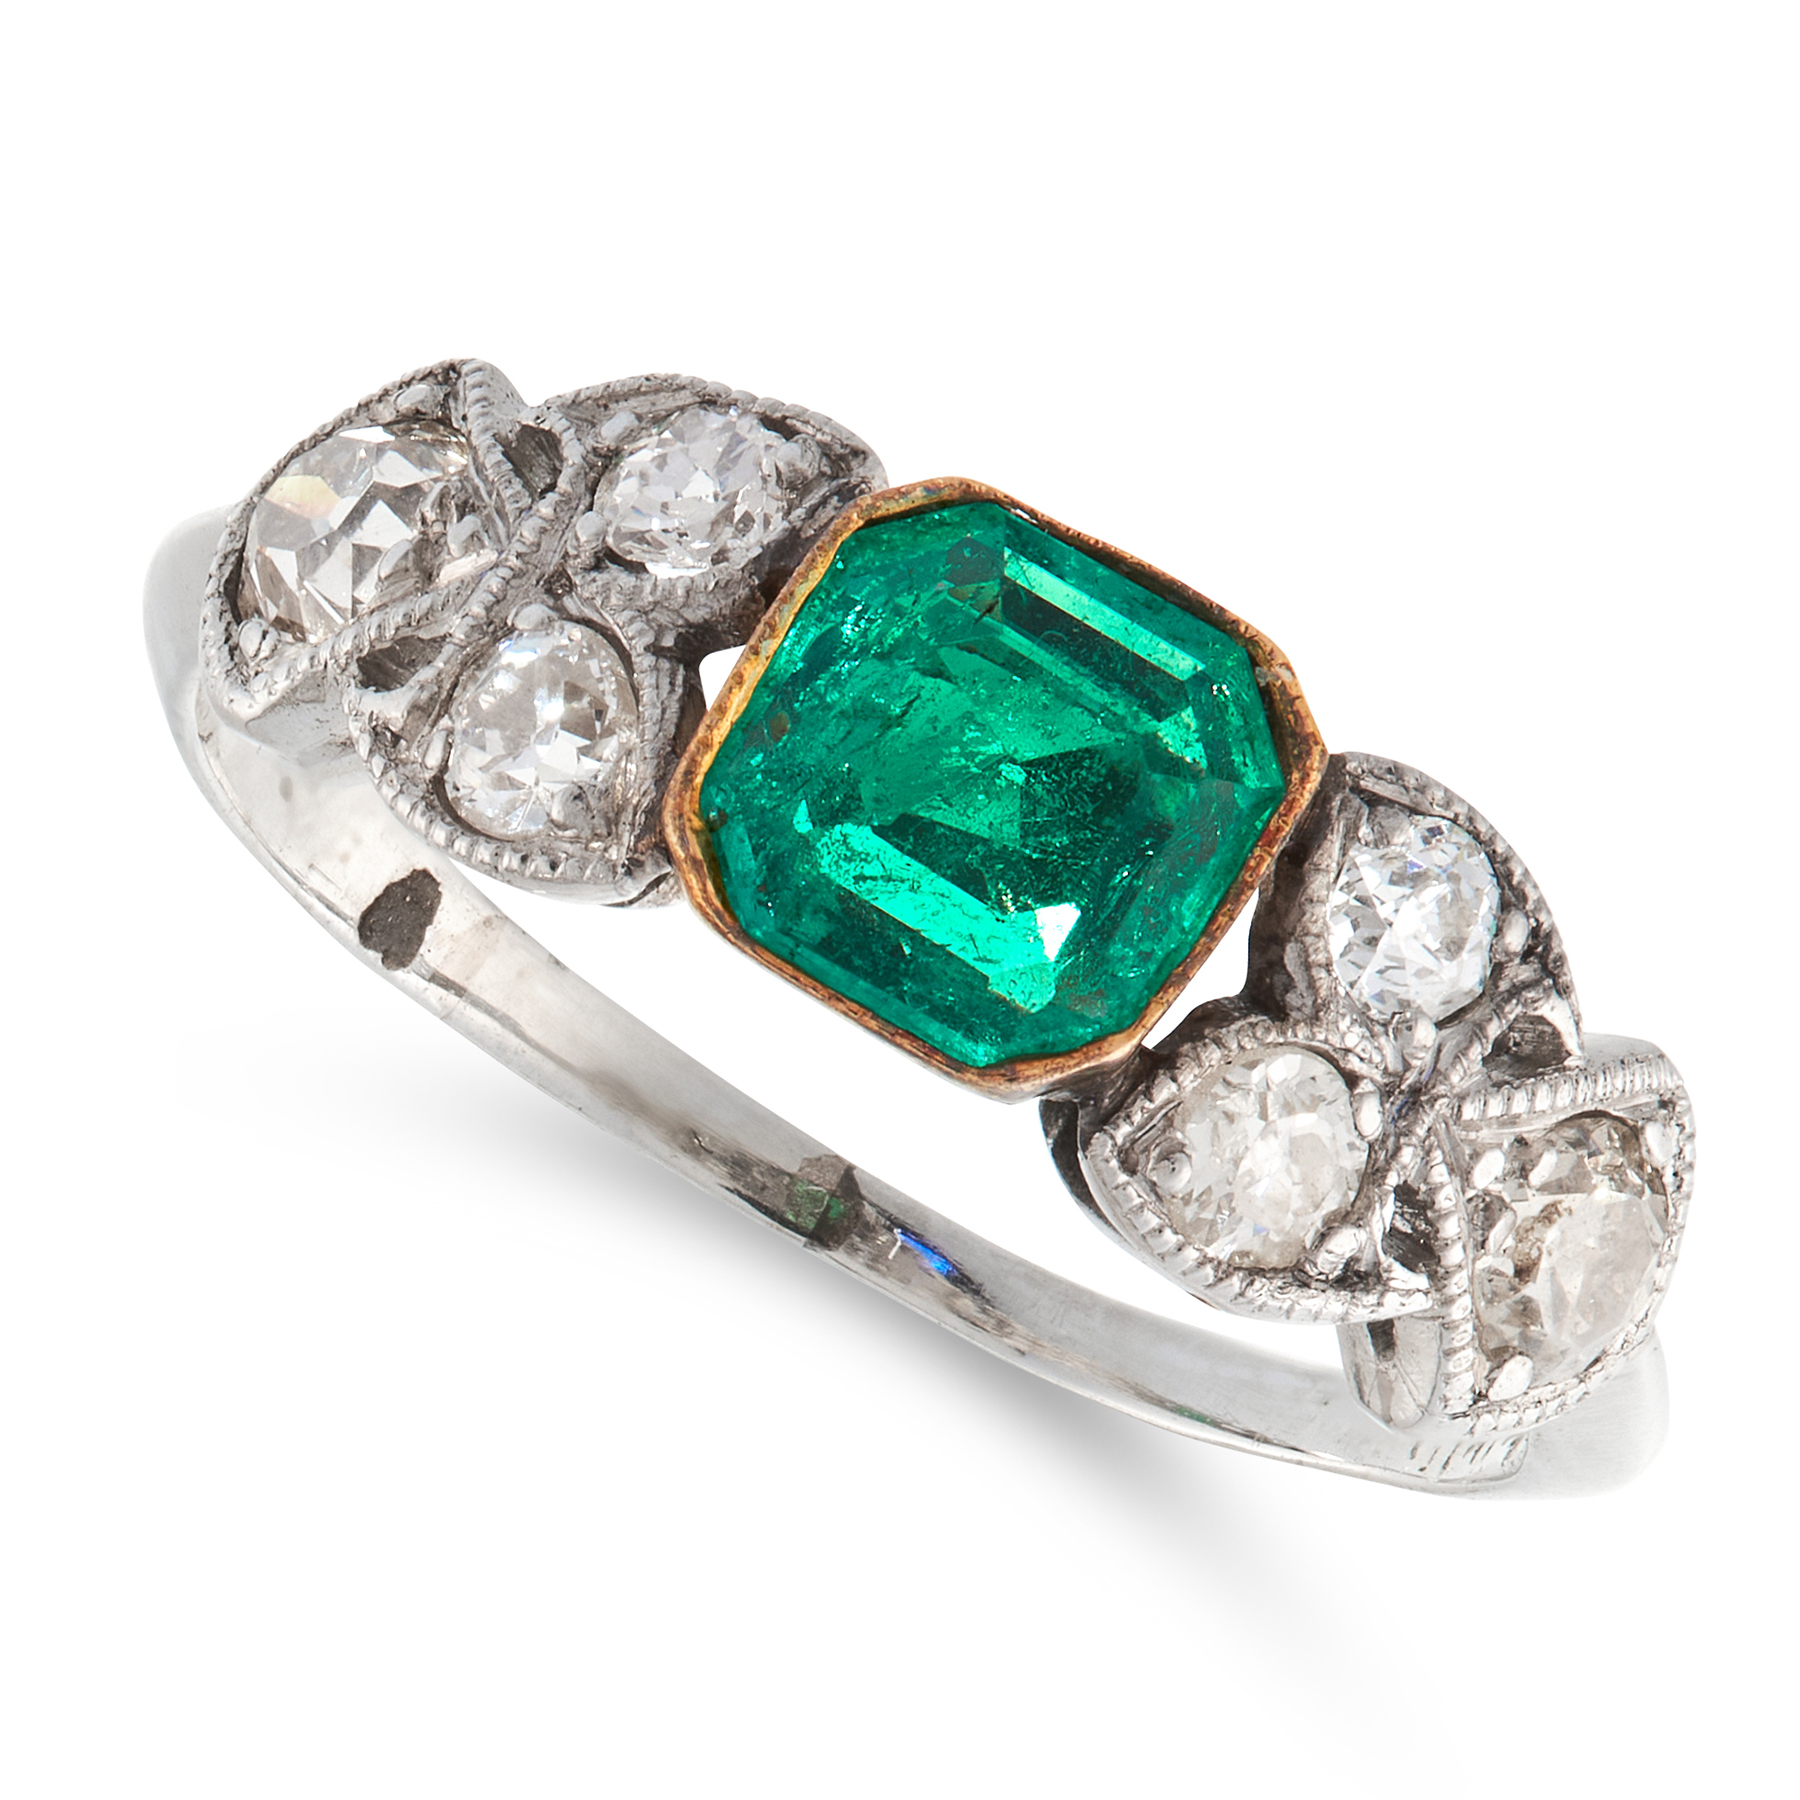 AN EMERALD AND DIAMOND DRESS RING in platinum, set with an emerald cut emerald of 0.37 carats - Image 2 of 2